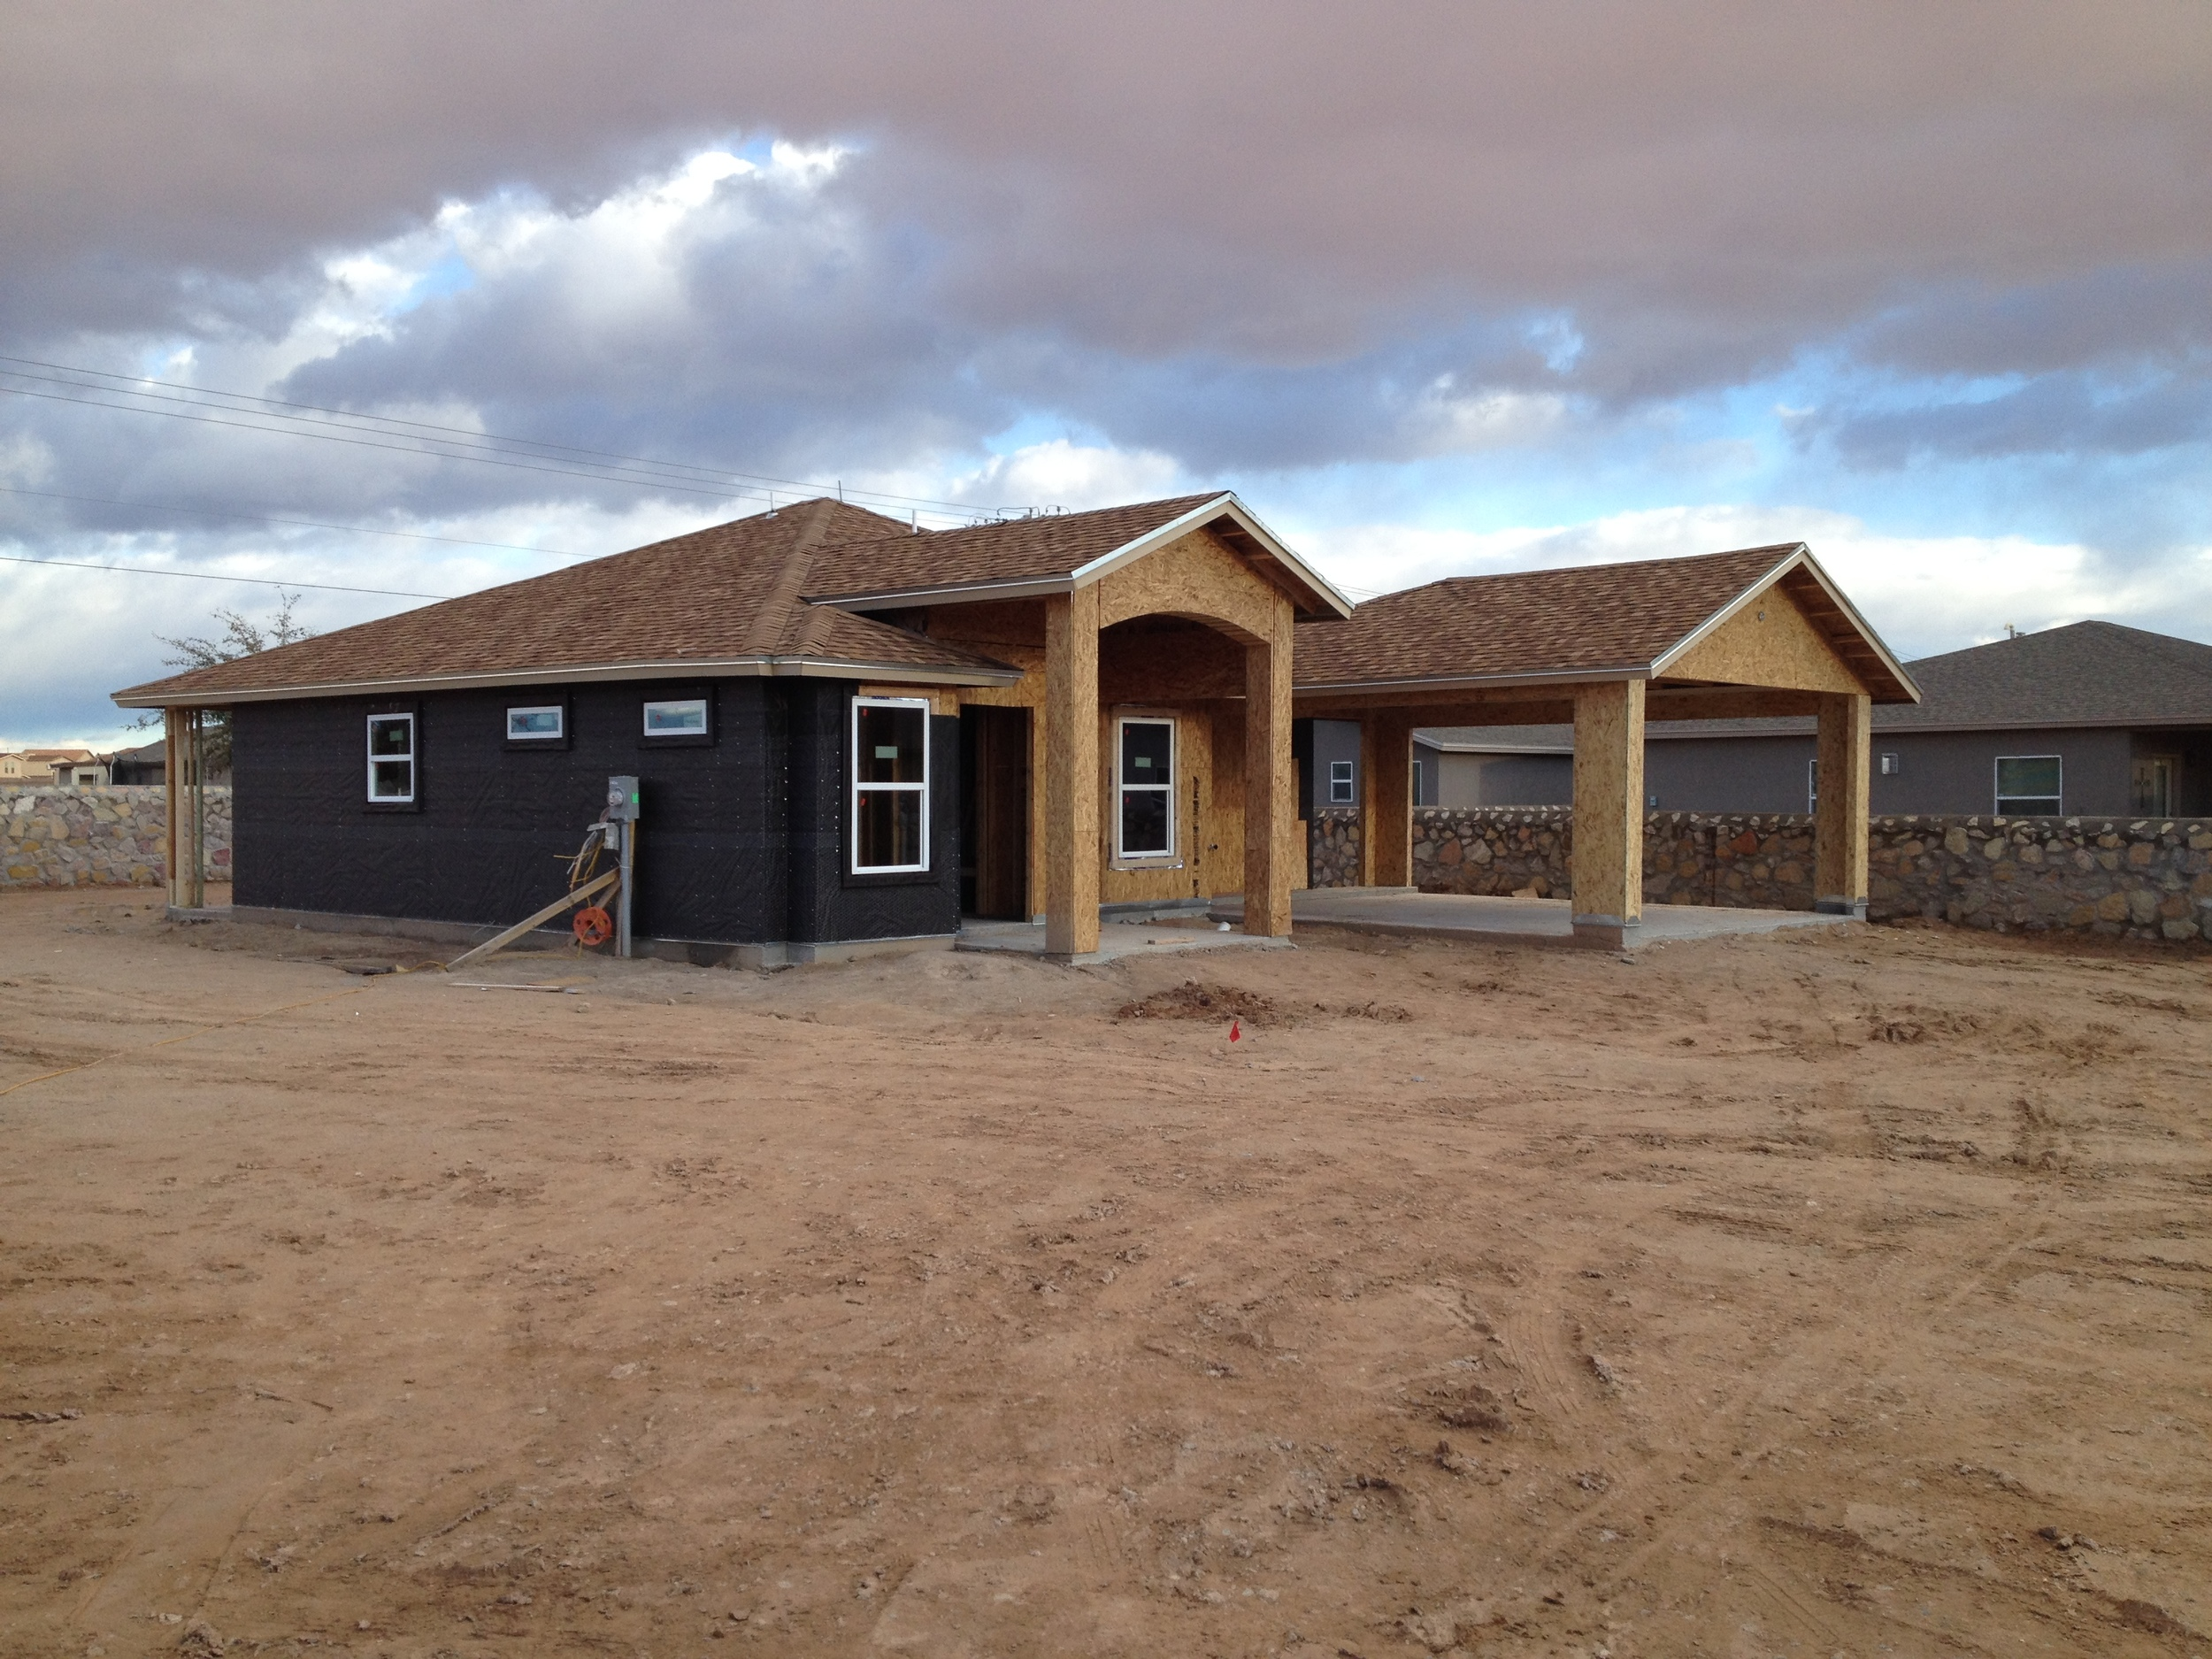 The house near the final stage of construction is prepared for stucco.